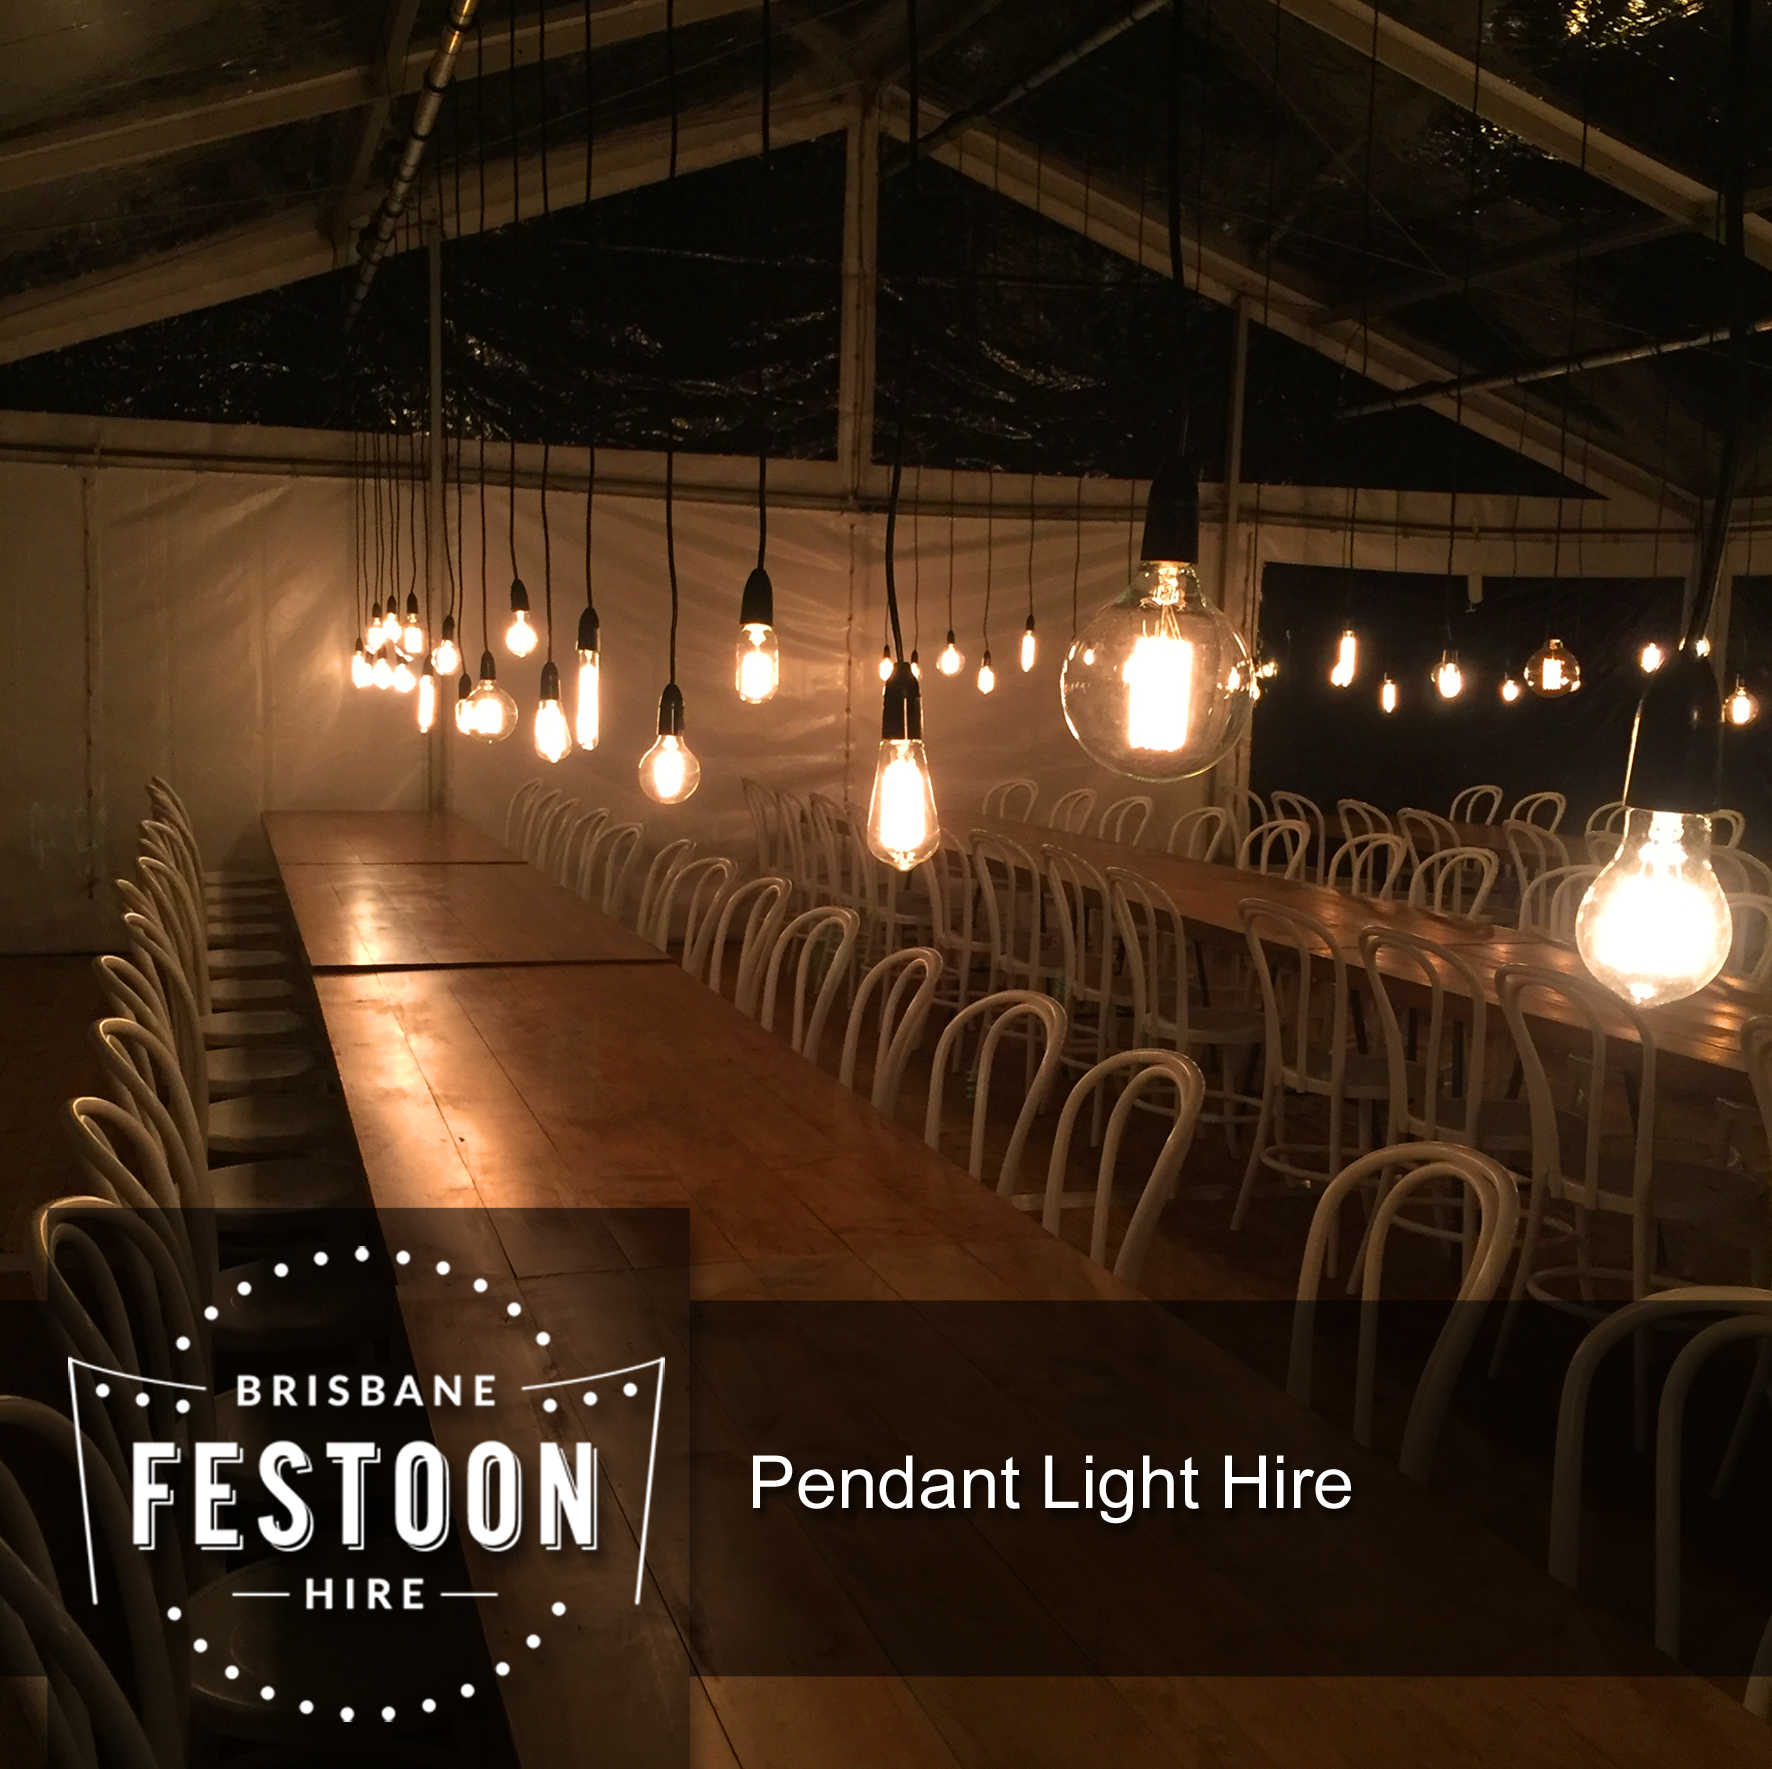 Brisbane Festoon Hire - Pendant Light Hire 1.jpg